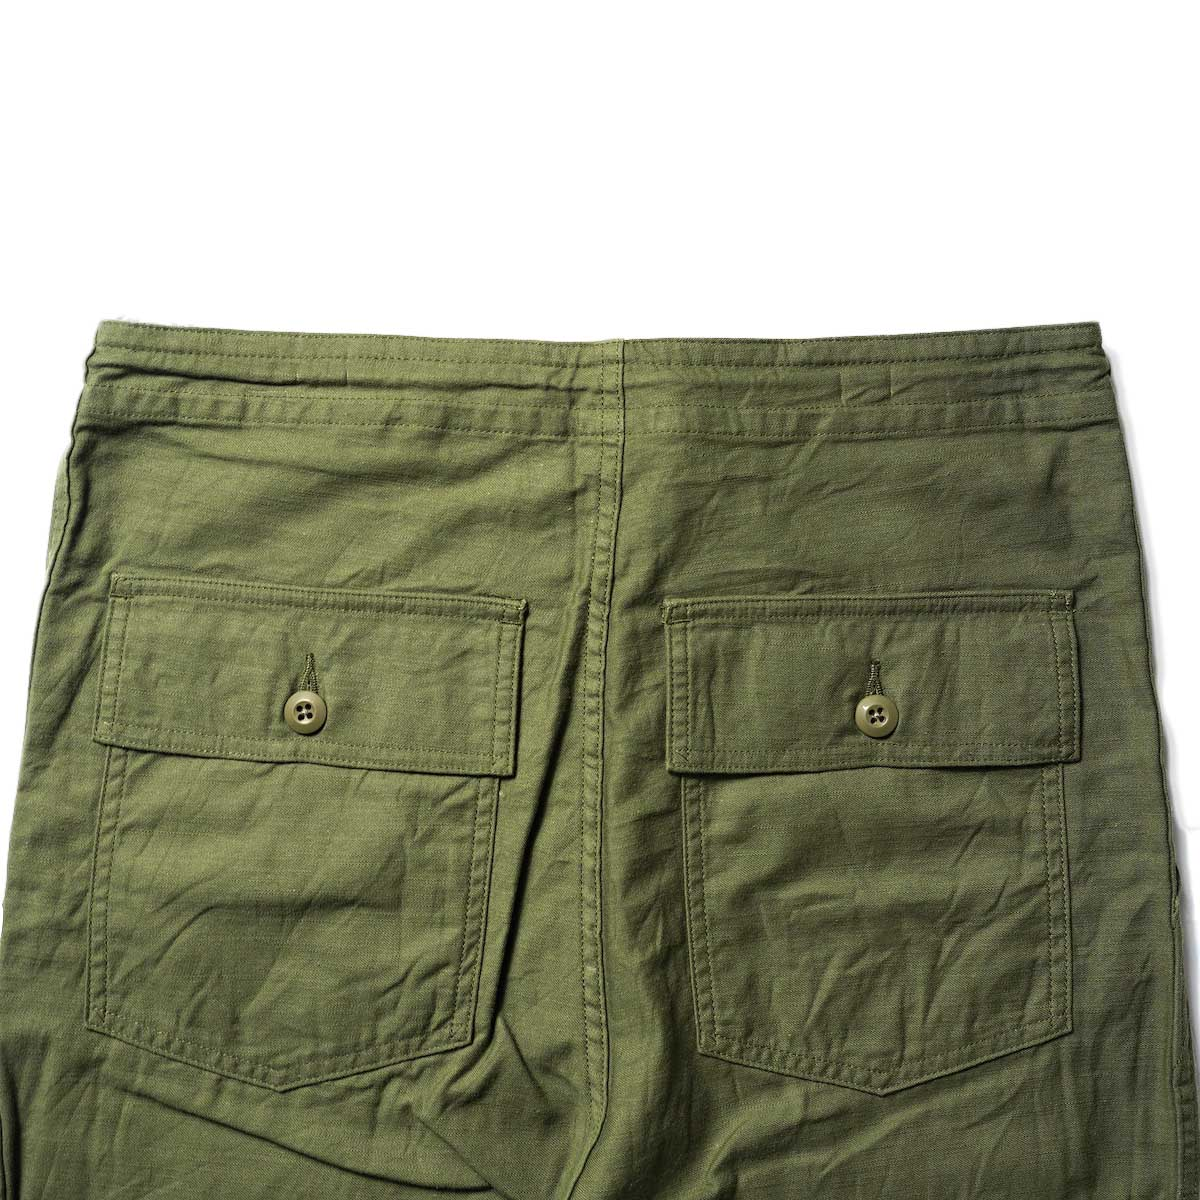 Needles / STRING FATIGUE PANT - BACK SATEEN (Olive)ヒップポケット